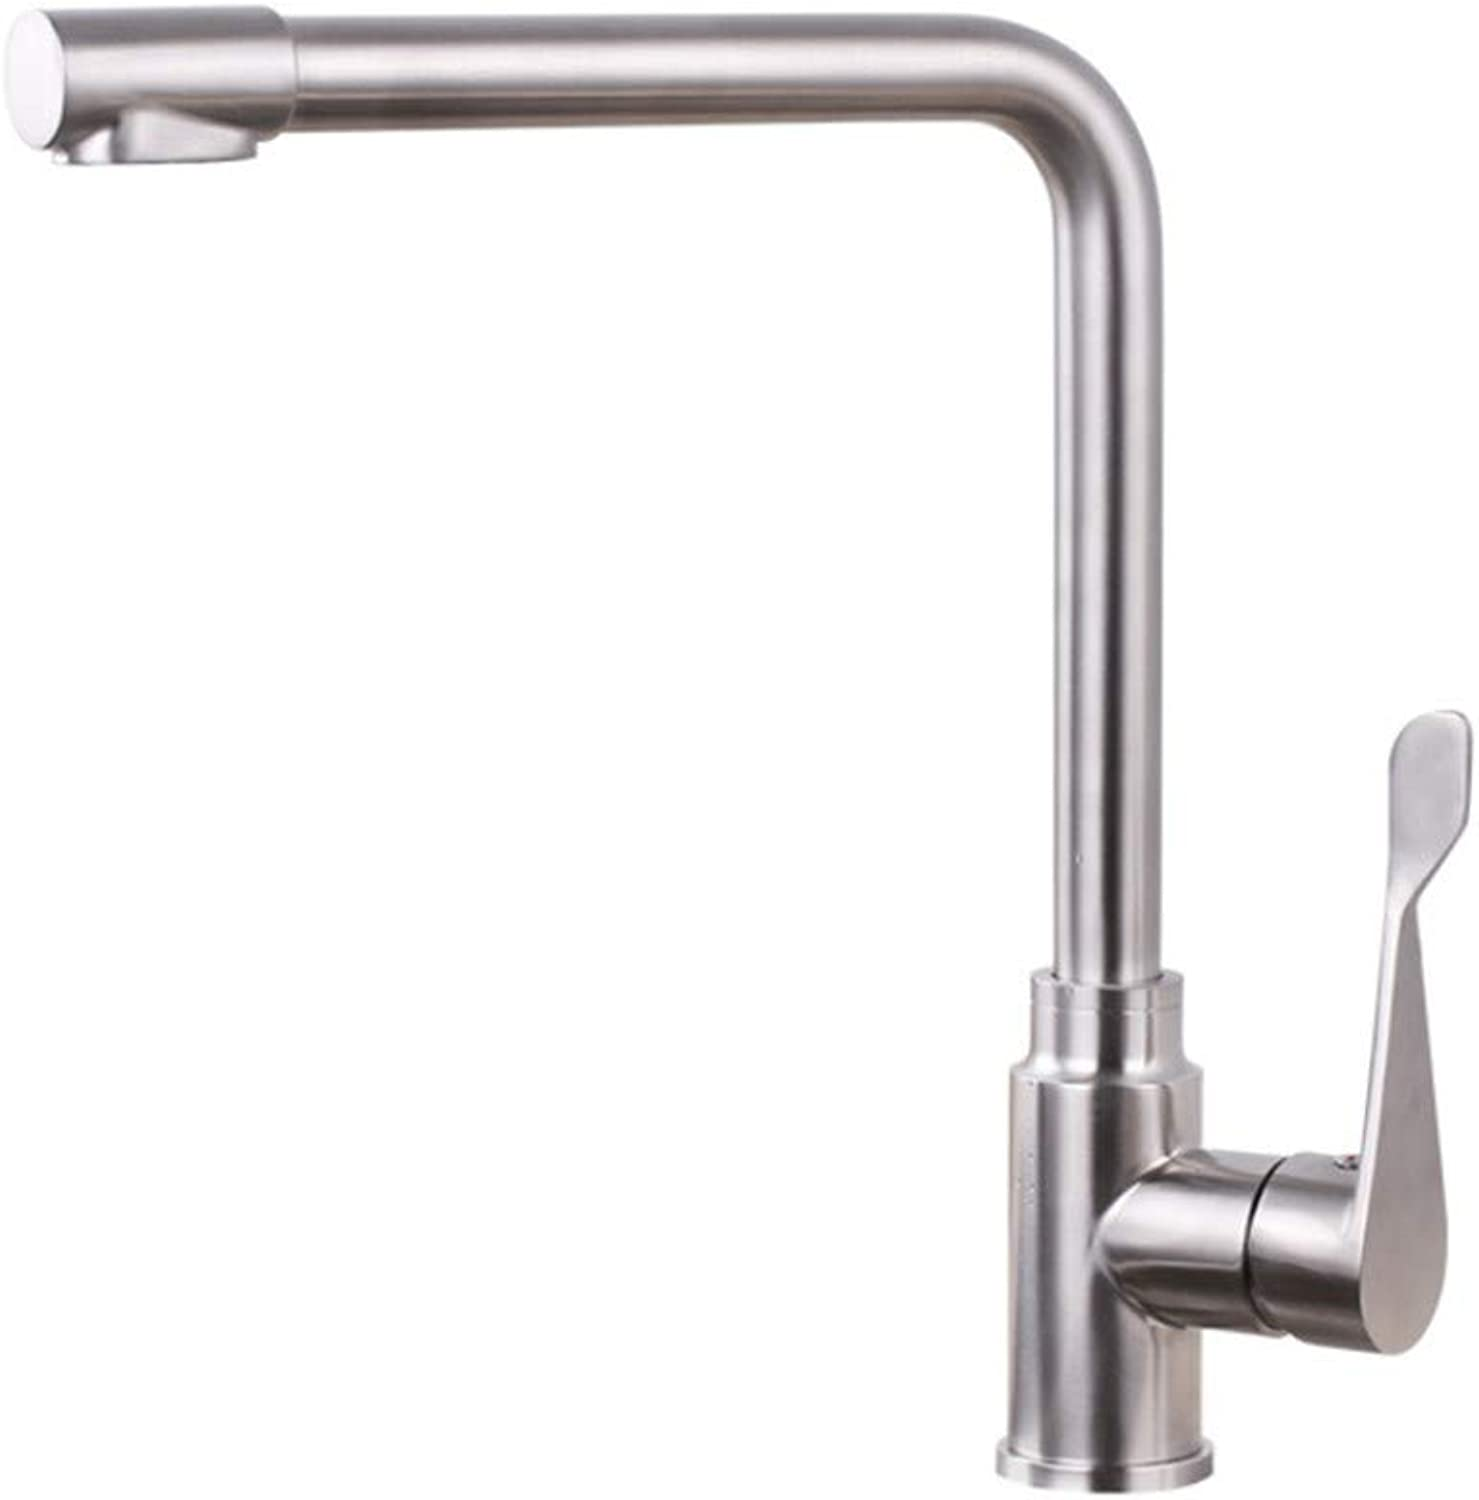 Basin Taps Swivel Spout Faucet 304 Stainless Steel Faucet Kitchen Hot and Cold Pure Faucet Dual-Use Direct Drink Three-in-One